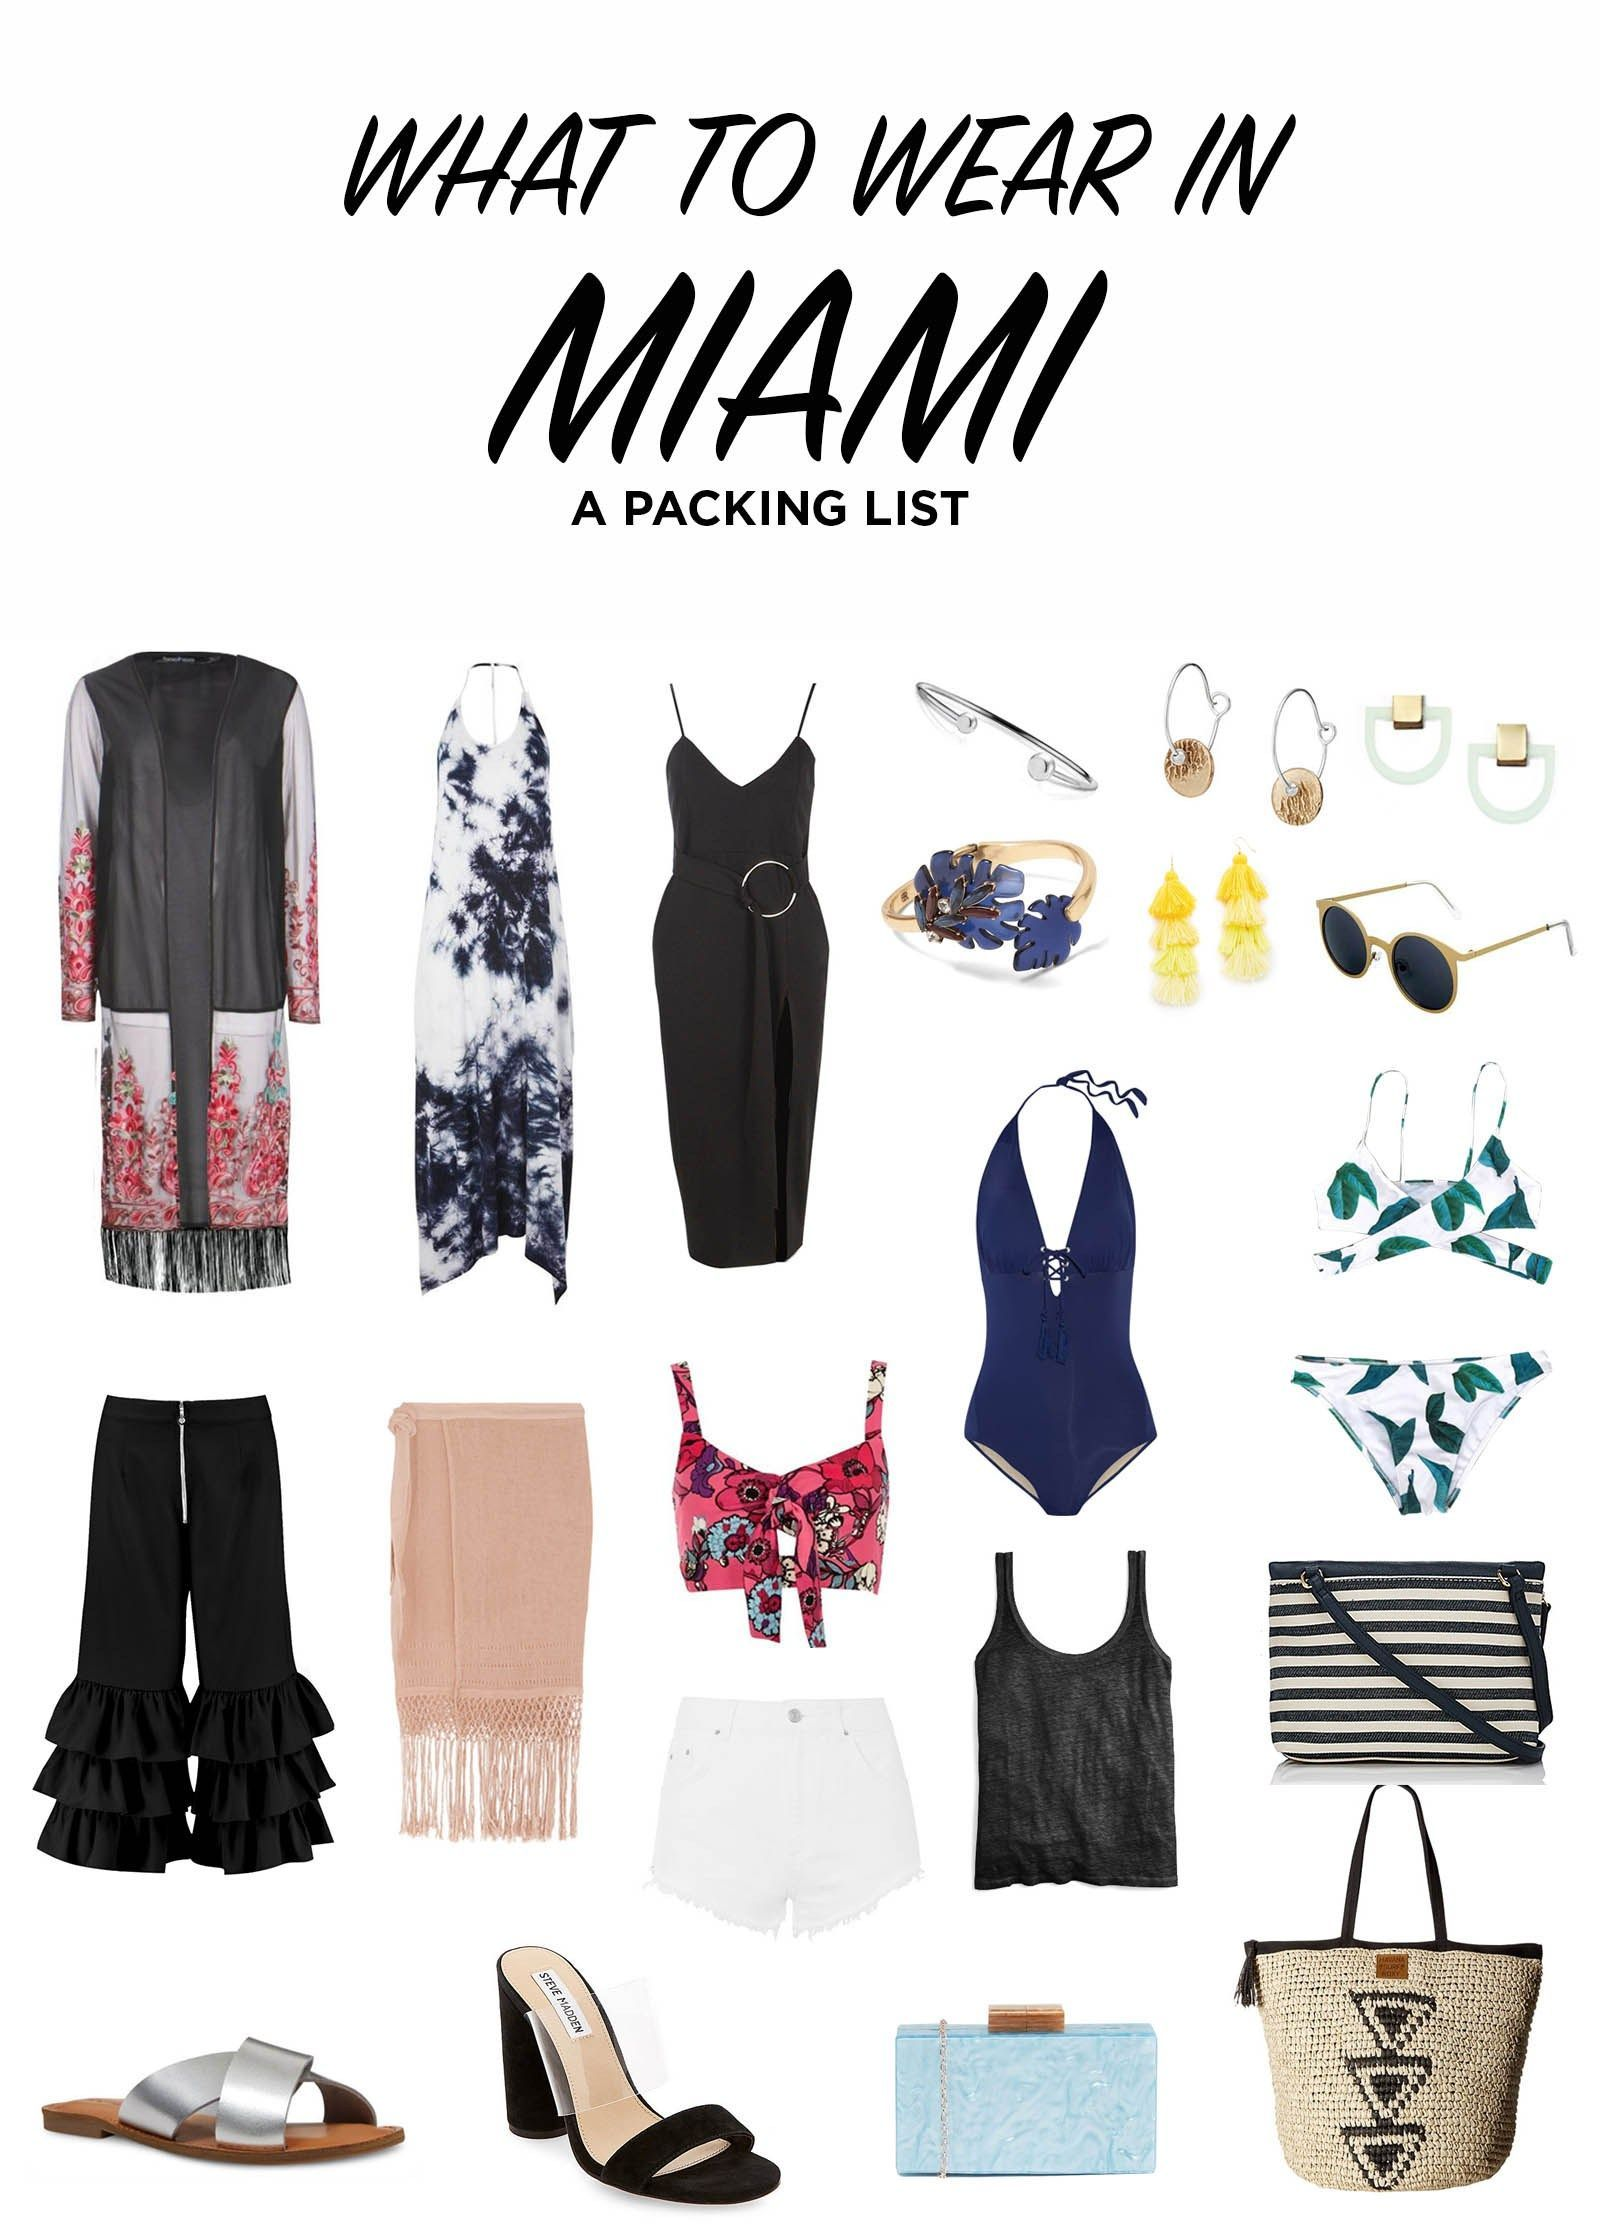 What To Wear In Miami: A Complete Outfit Packing List // This packing list creates